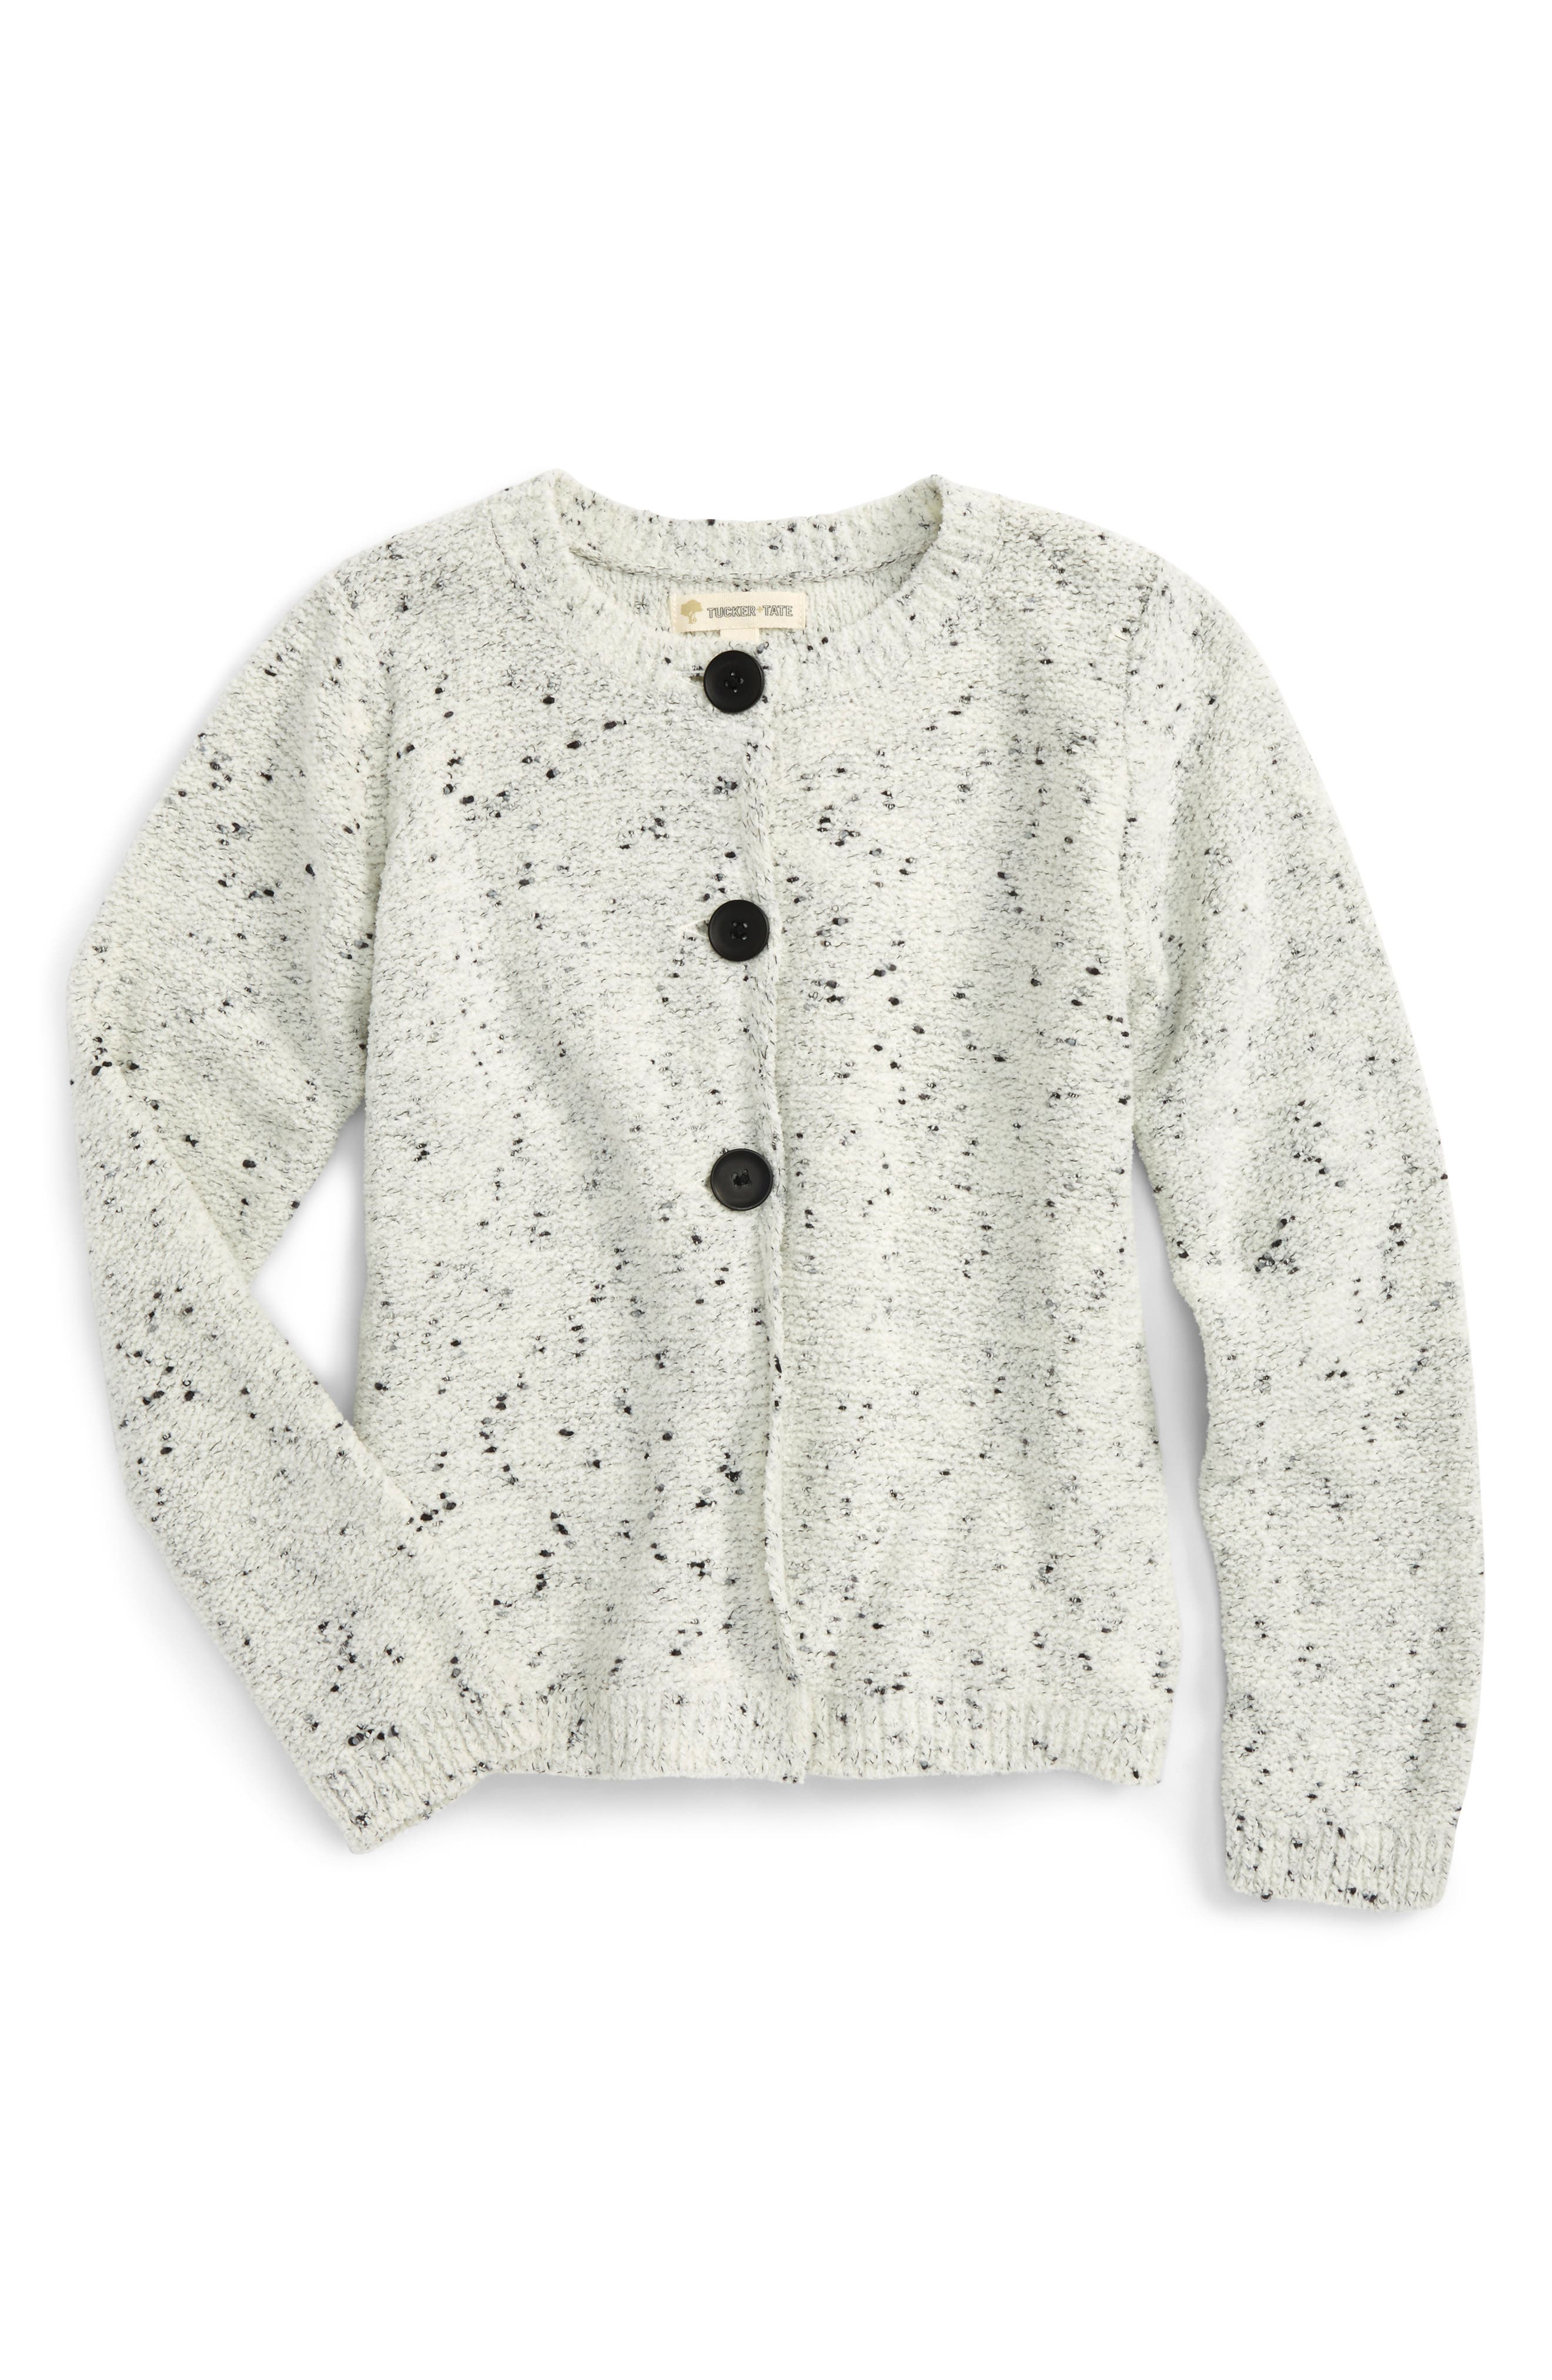 Speckle Swing Cardigan,                             Main thumbnail 1, color,                             900